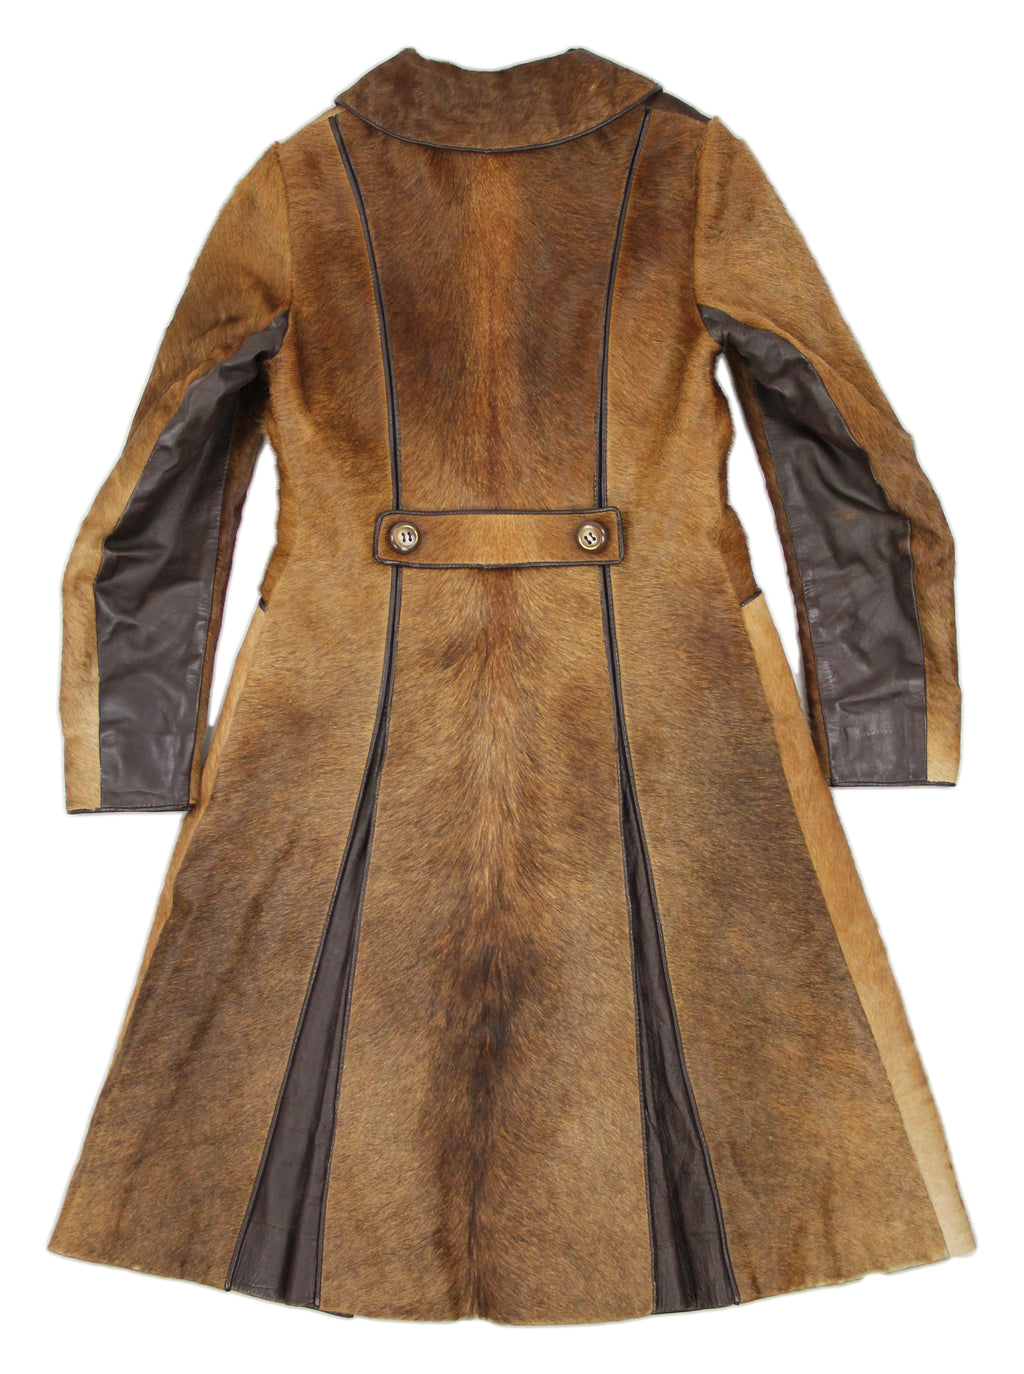 Vintage 70's Calfskin Tailored Fur Coat, SIZE XS